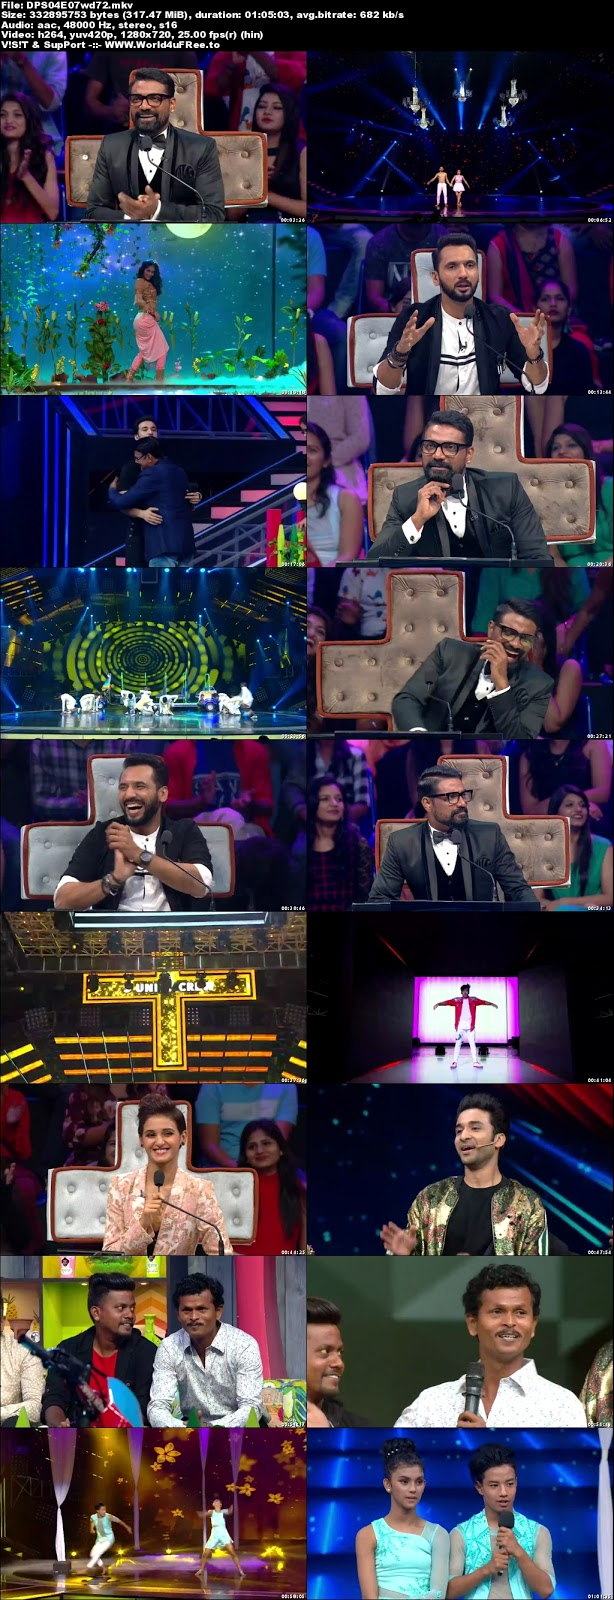 Dance Plus S4 27 October 2018 720p HDTV 300mb x264 world4ufree.vip tv show Dance Plus 4 2018 hindi tv show Dance Plus 4 2018 Season 4 Star Plus tv show compressed small size free download or watch online at world4ufree.vip